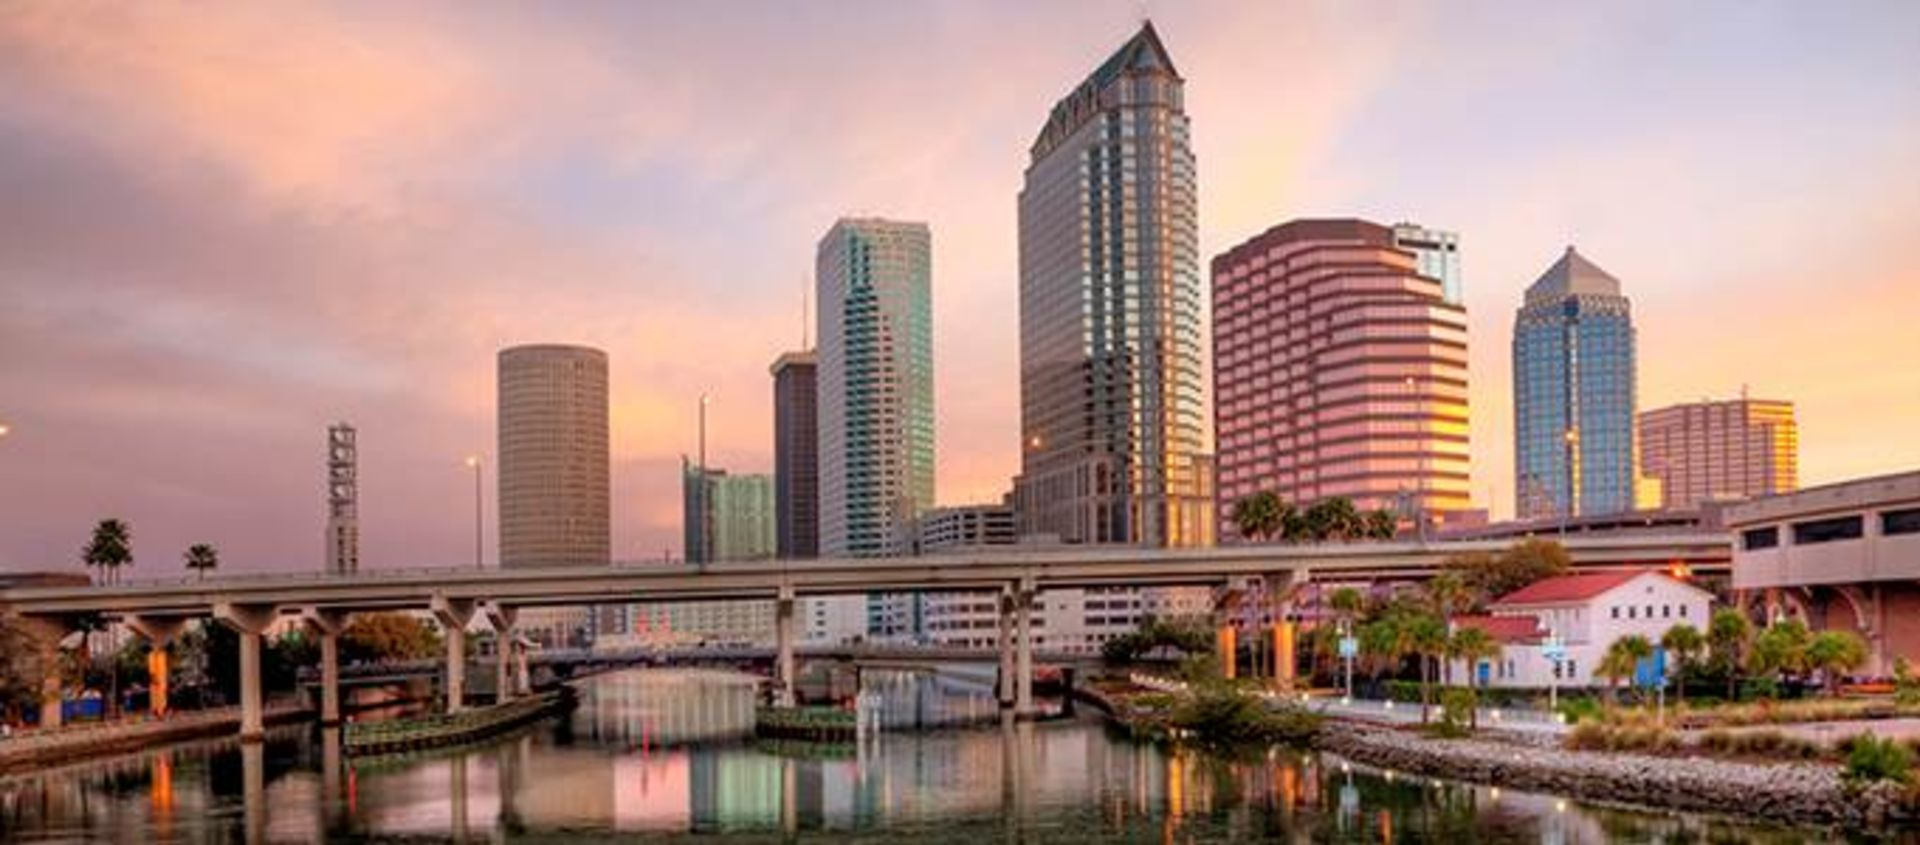 Tampa has the healthiest housing market in the country!